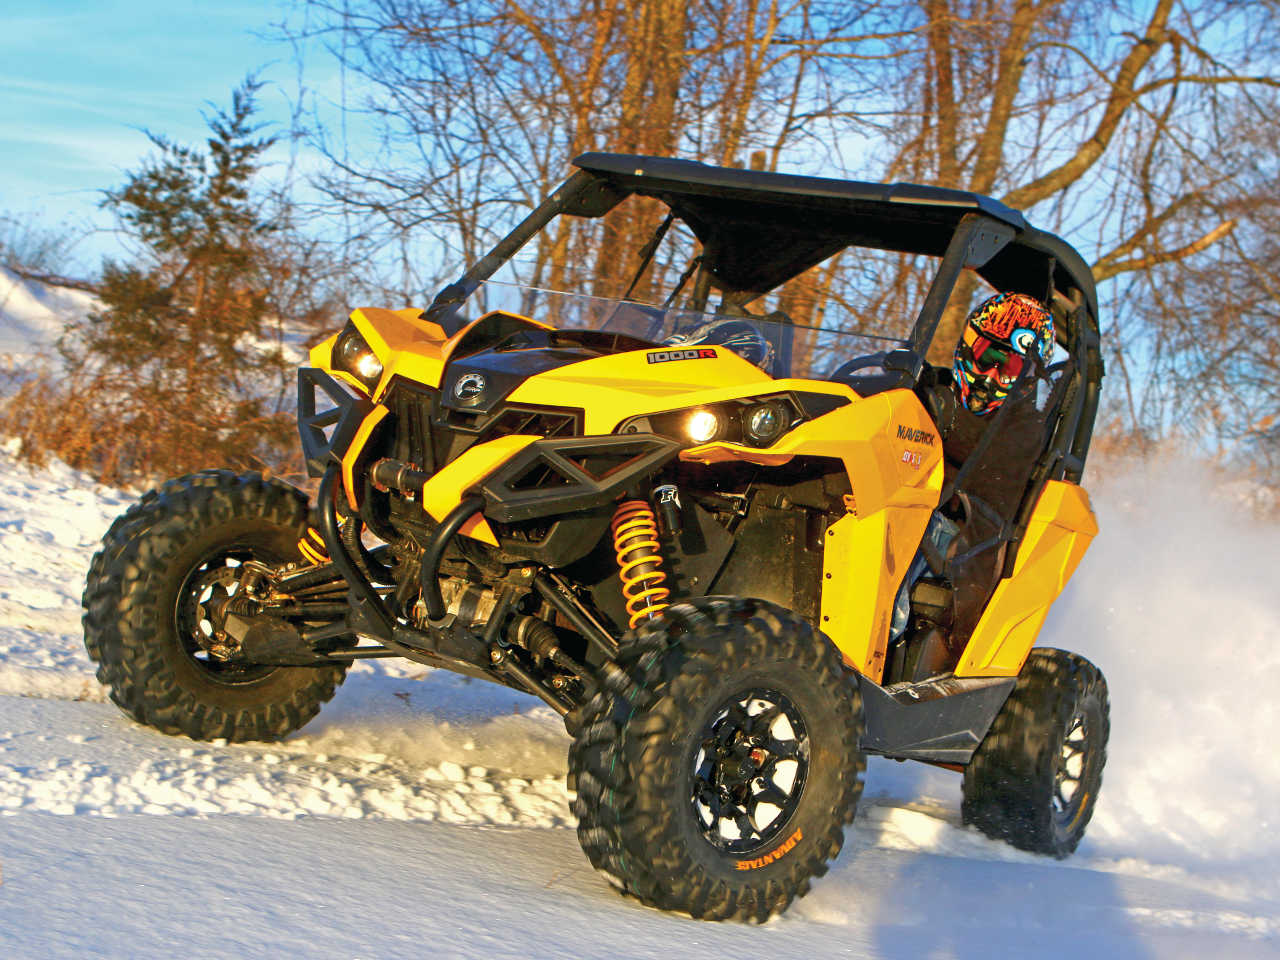 vendor.2015.vee-rubber.advantage-tires.on-can-am-maverick.front_.in-snow.JPG